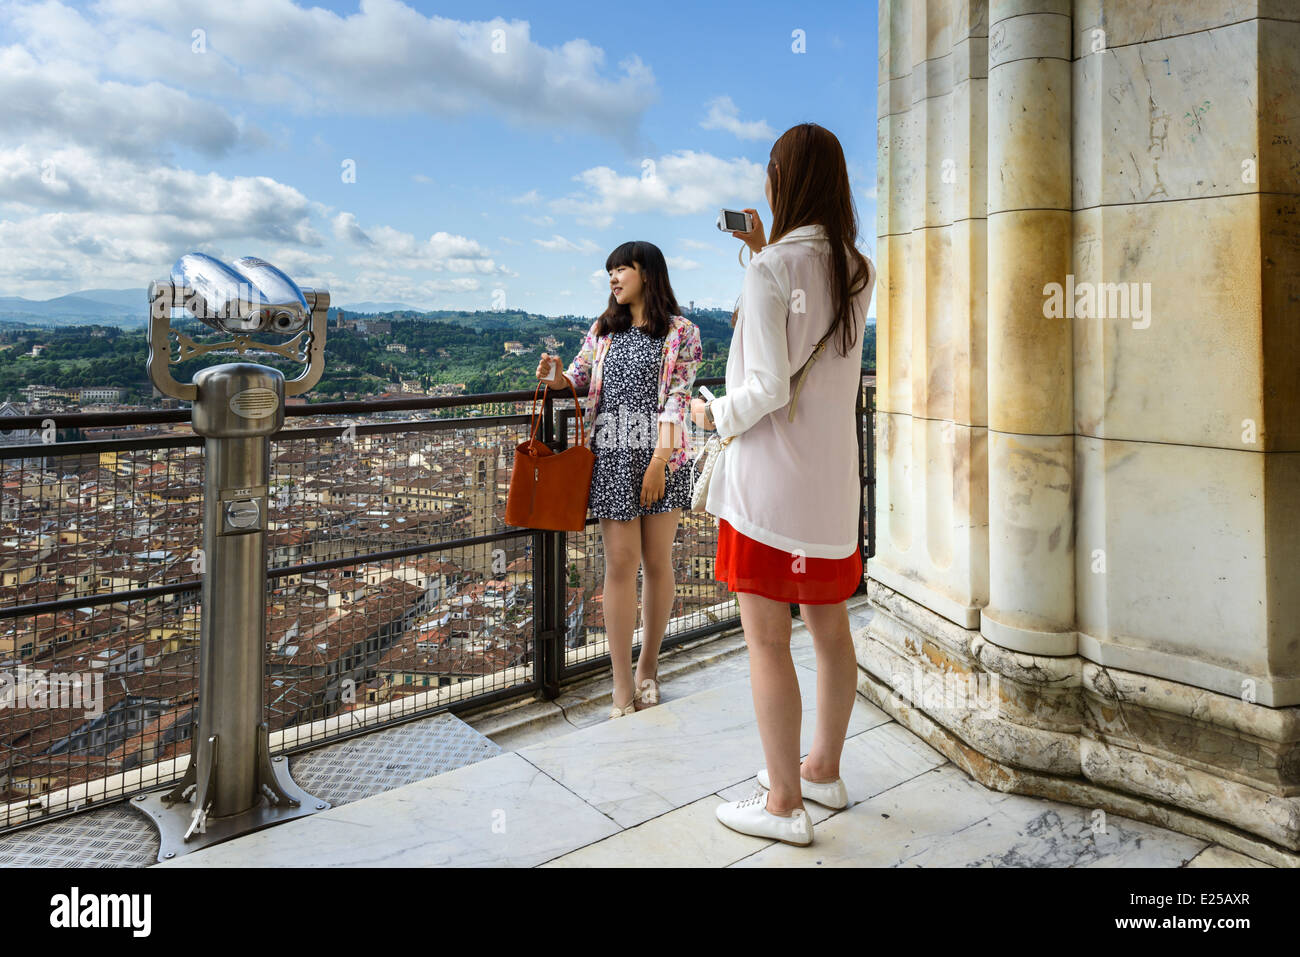 Tourists taking holiday photos in Florence Tuscany - Stock Image